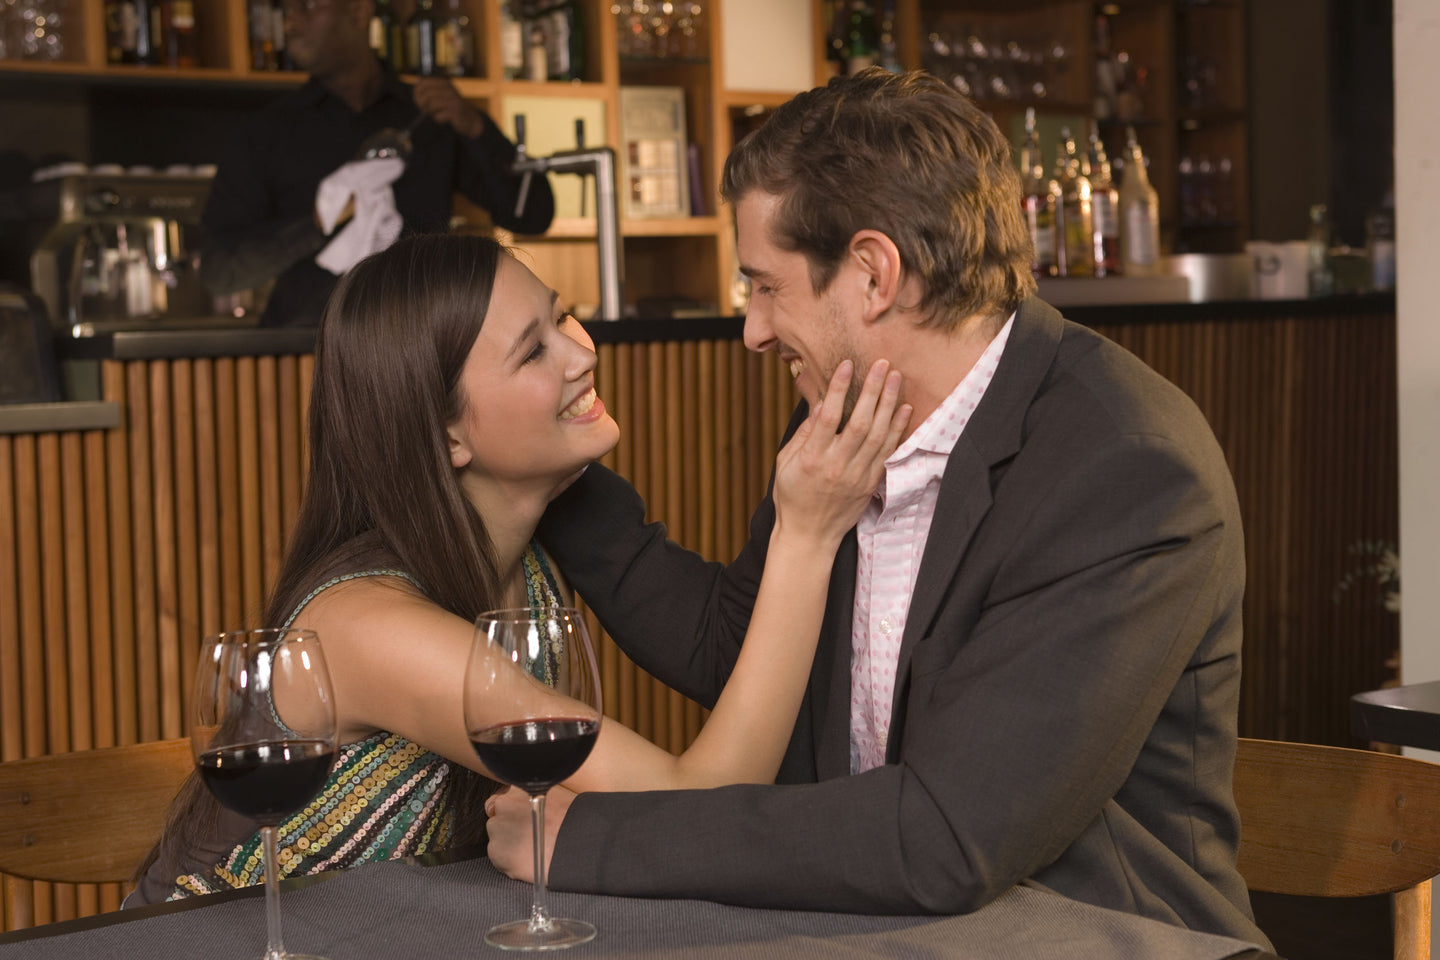 man and woman on a date in a wine bar